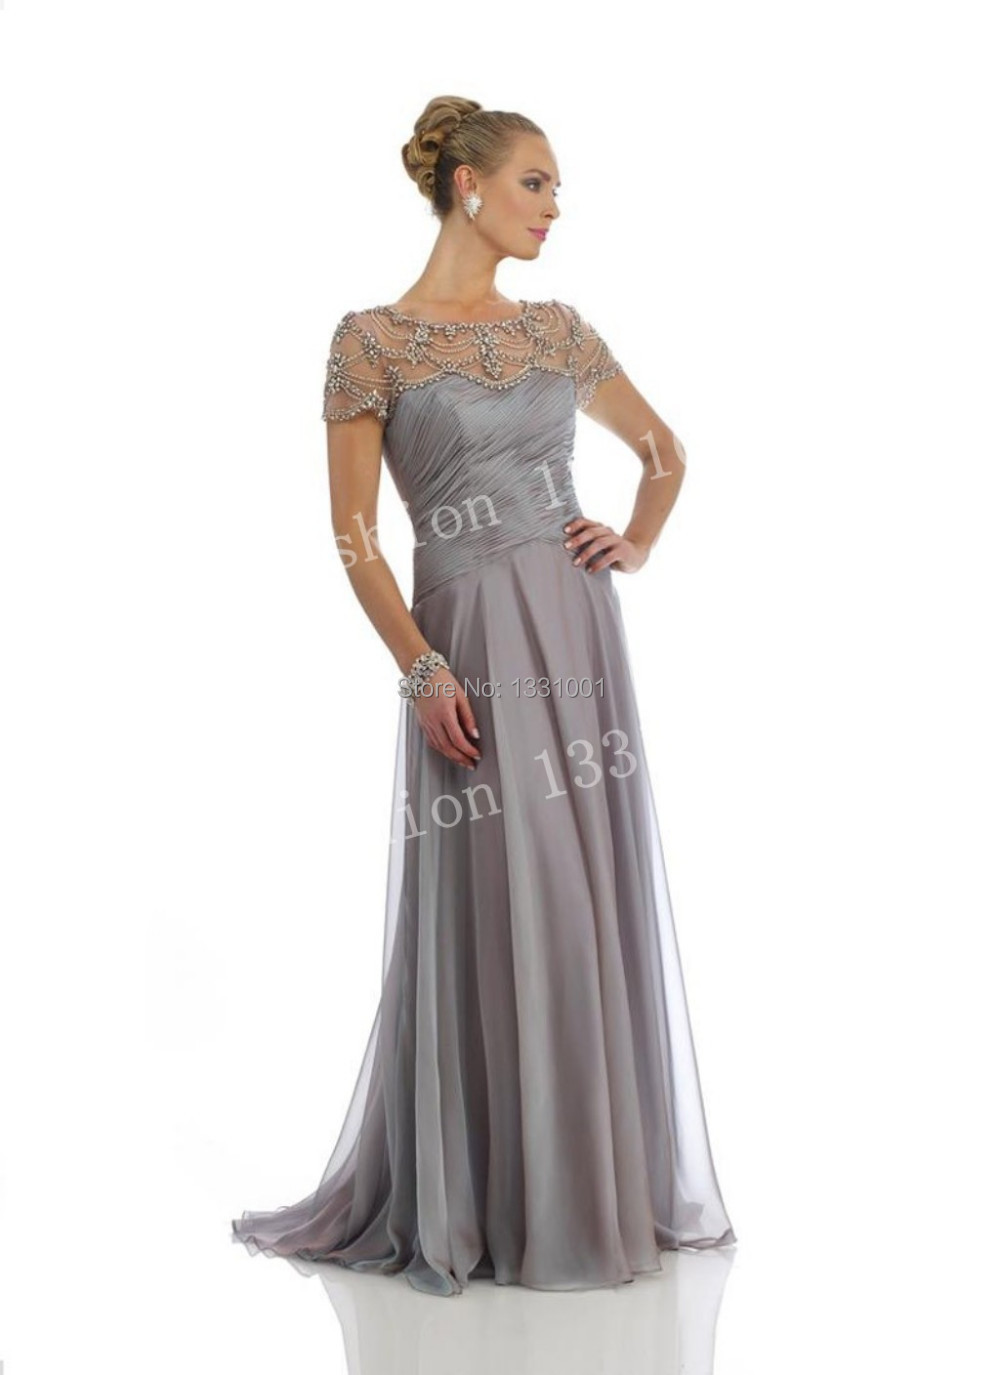 xianggangdishini.gq prepared the perfect online shopping experience for you. Wanna to buy the new Quality Made In China Wedding Dresses now? If you haven't decided the style yet, then you may take the following product list as reference.